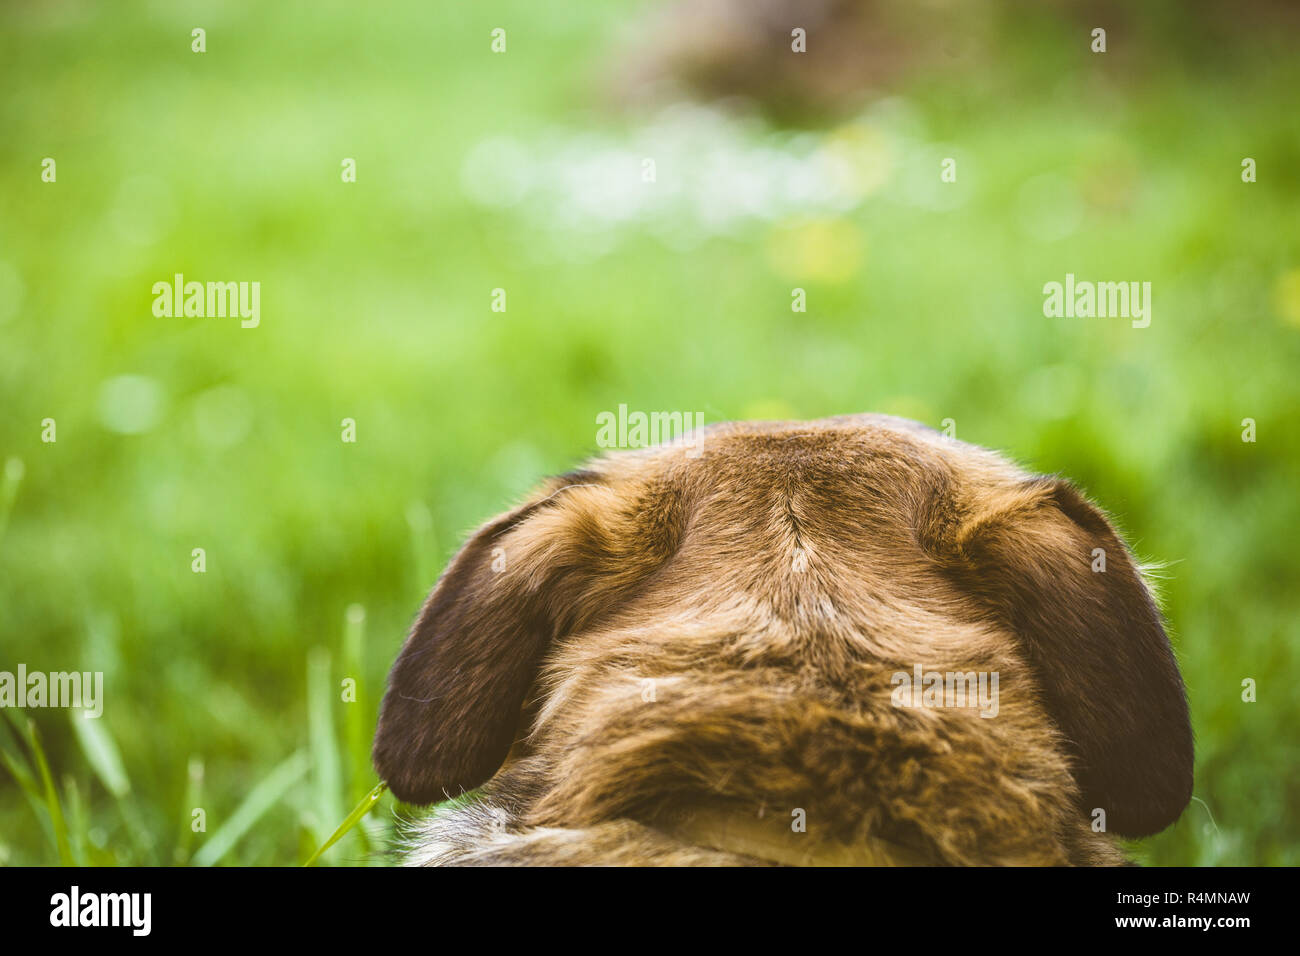 Dog in grass - Stock Image